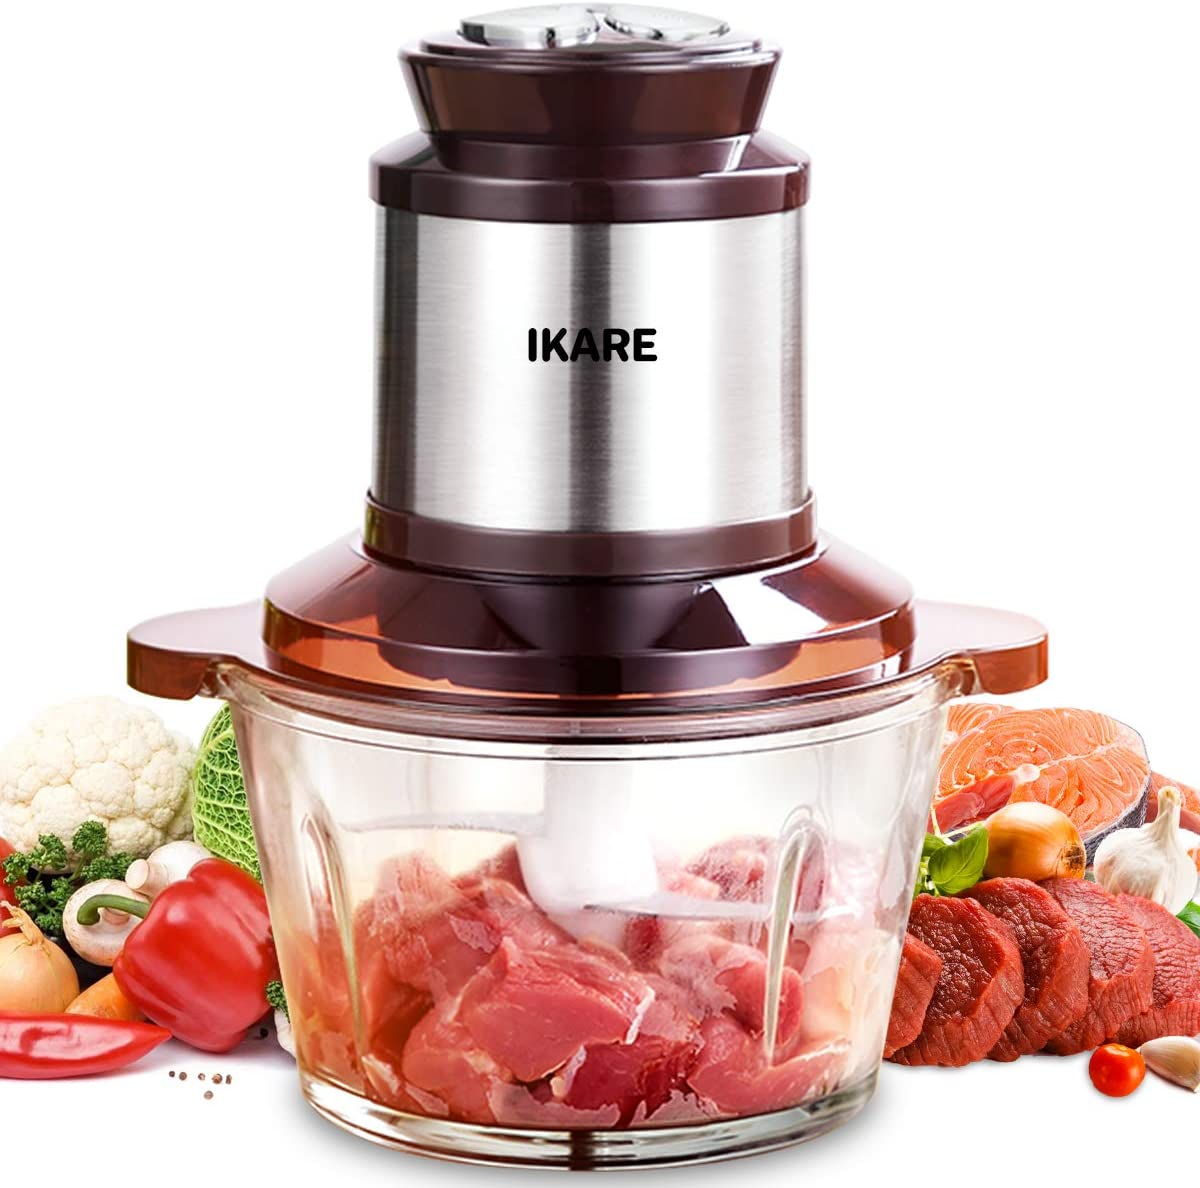 IKARE Electric Food Processor Food Chopper, Meat processor, High Capacity 8-cup 2L BPA-Free Glass Bowl Grinder for Meat, Vegetables, Fruits and Nuts, Stainless Steel Motor Unit and 4 Sharp Blades